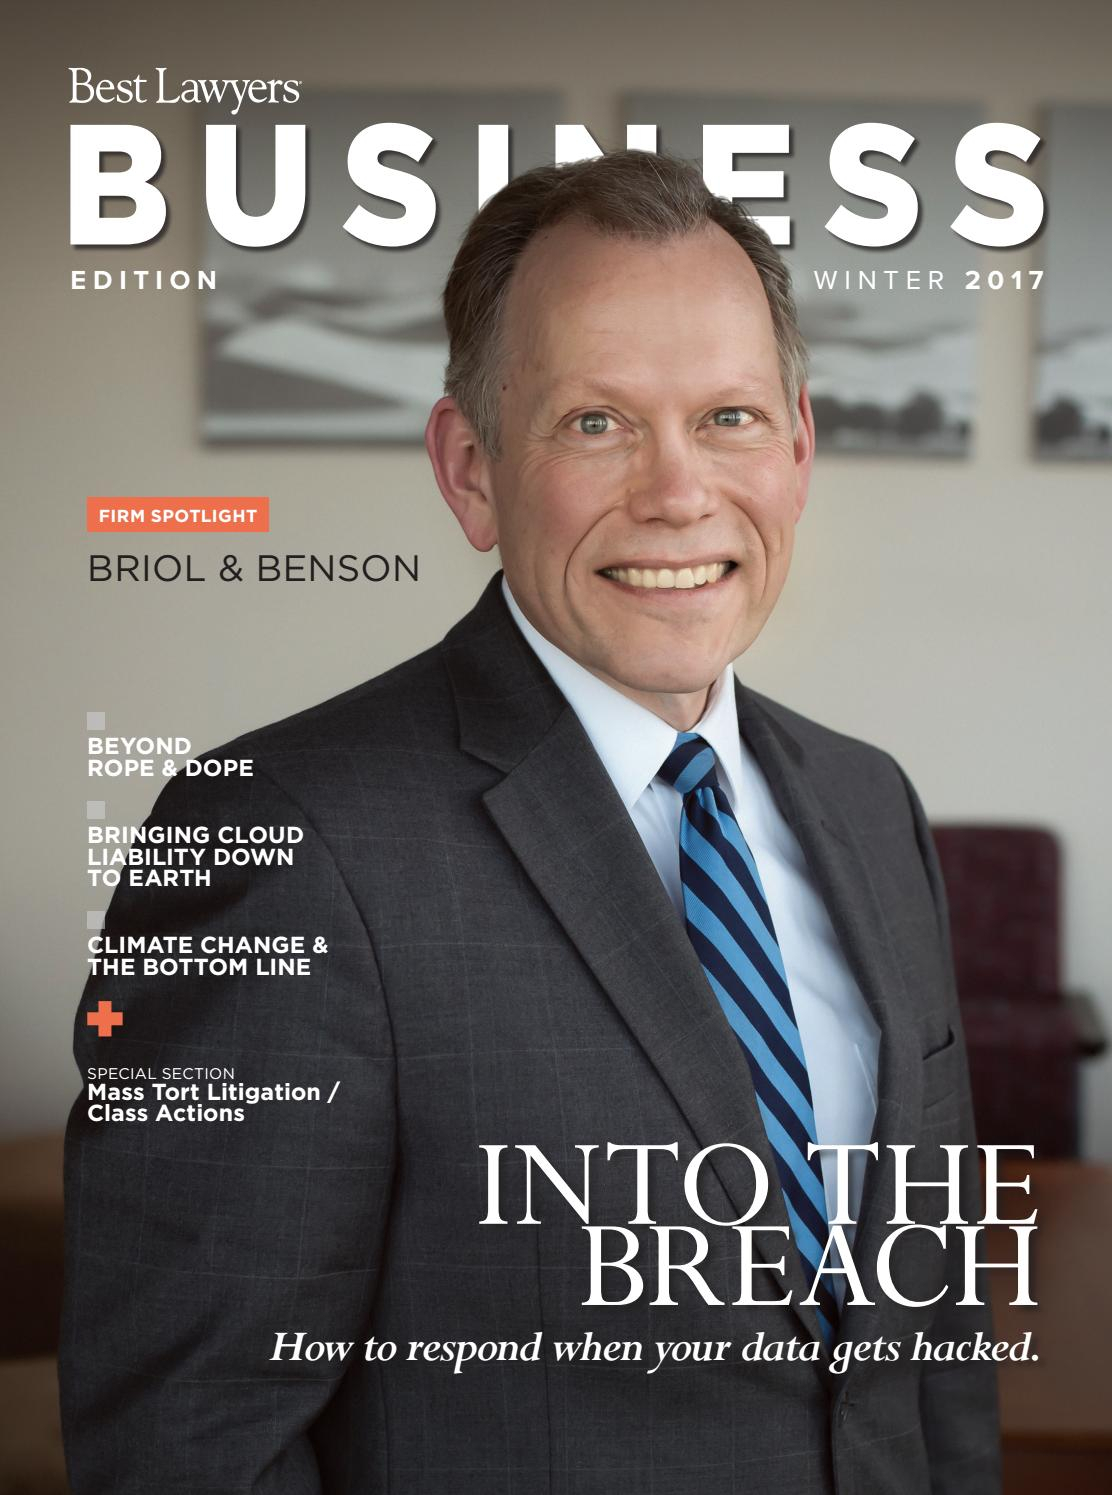 Best Lawyers Winter Business Edition 2017 By Best Lawyers